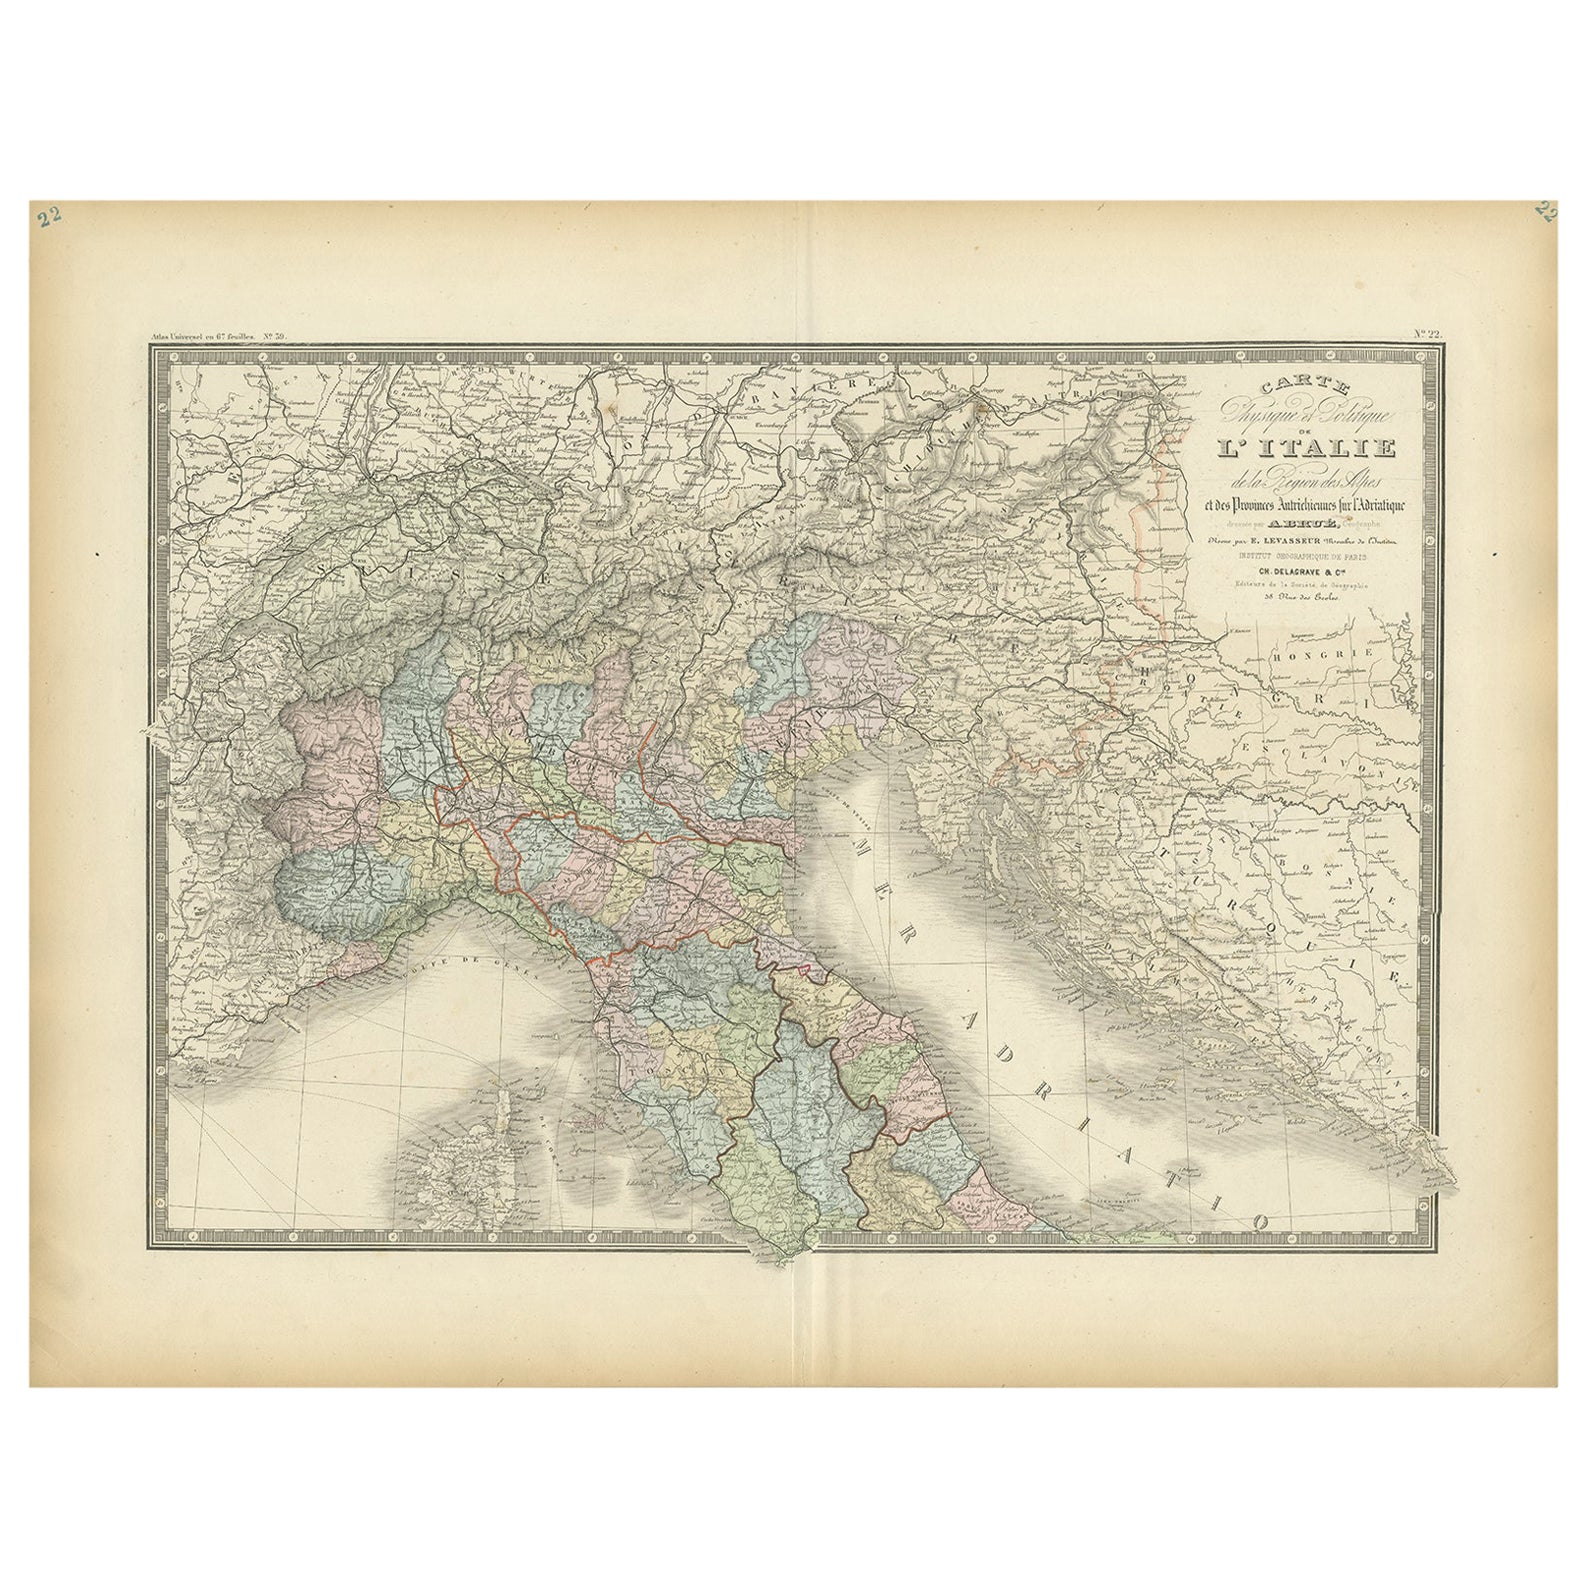 Antique Map of Northern Italy by Levasseur, 1875